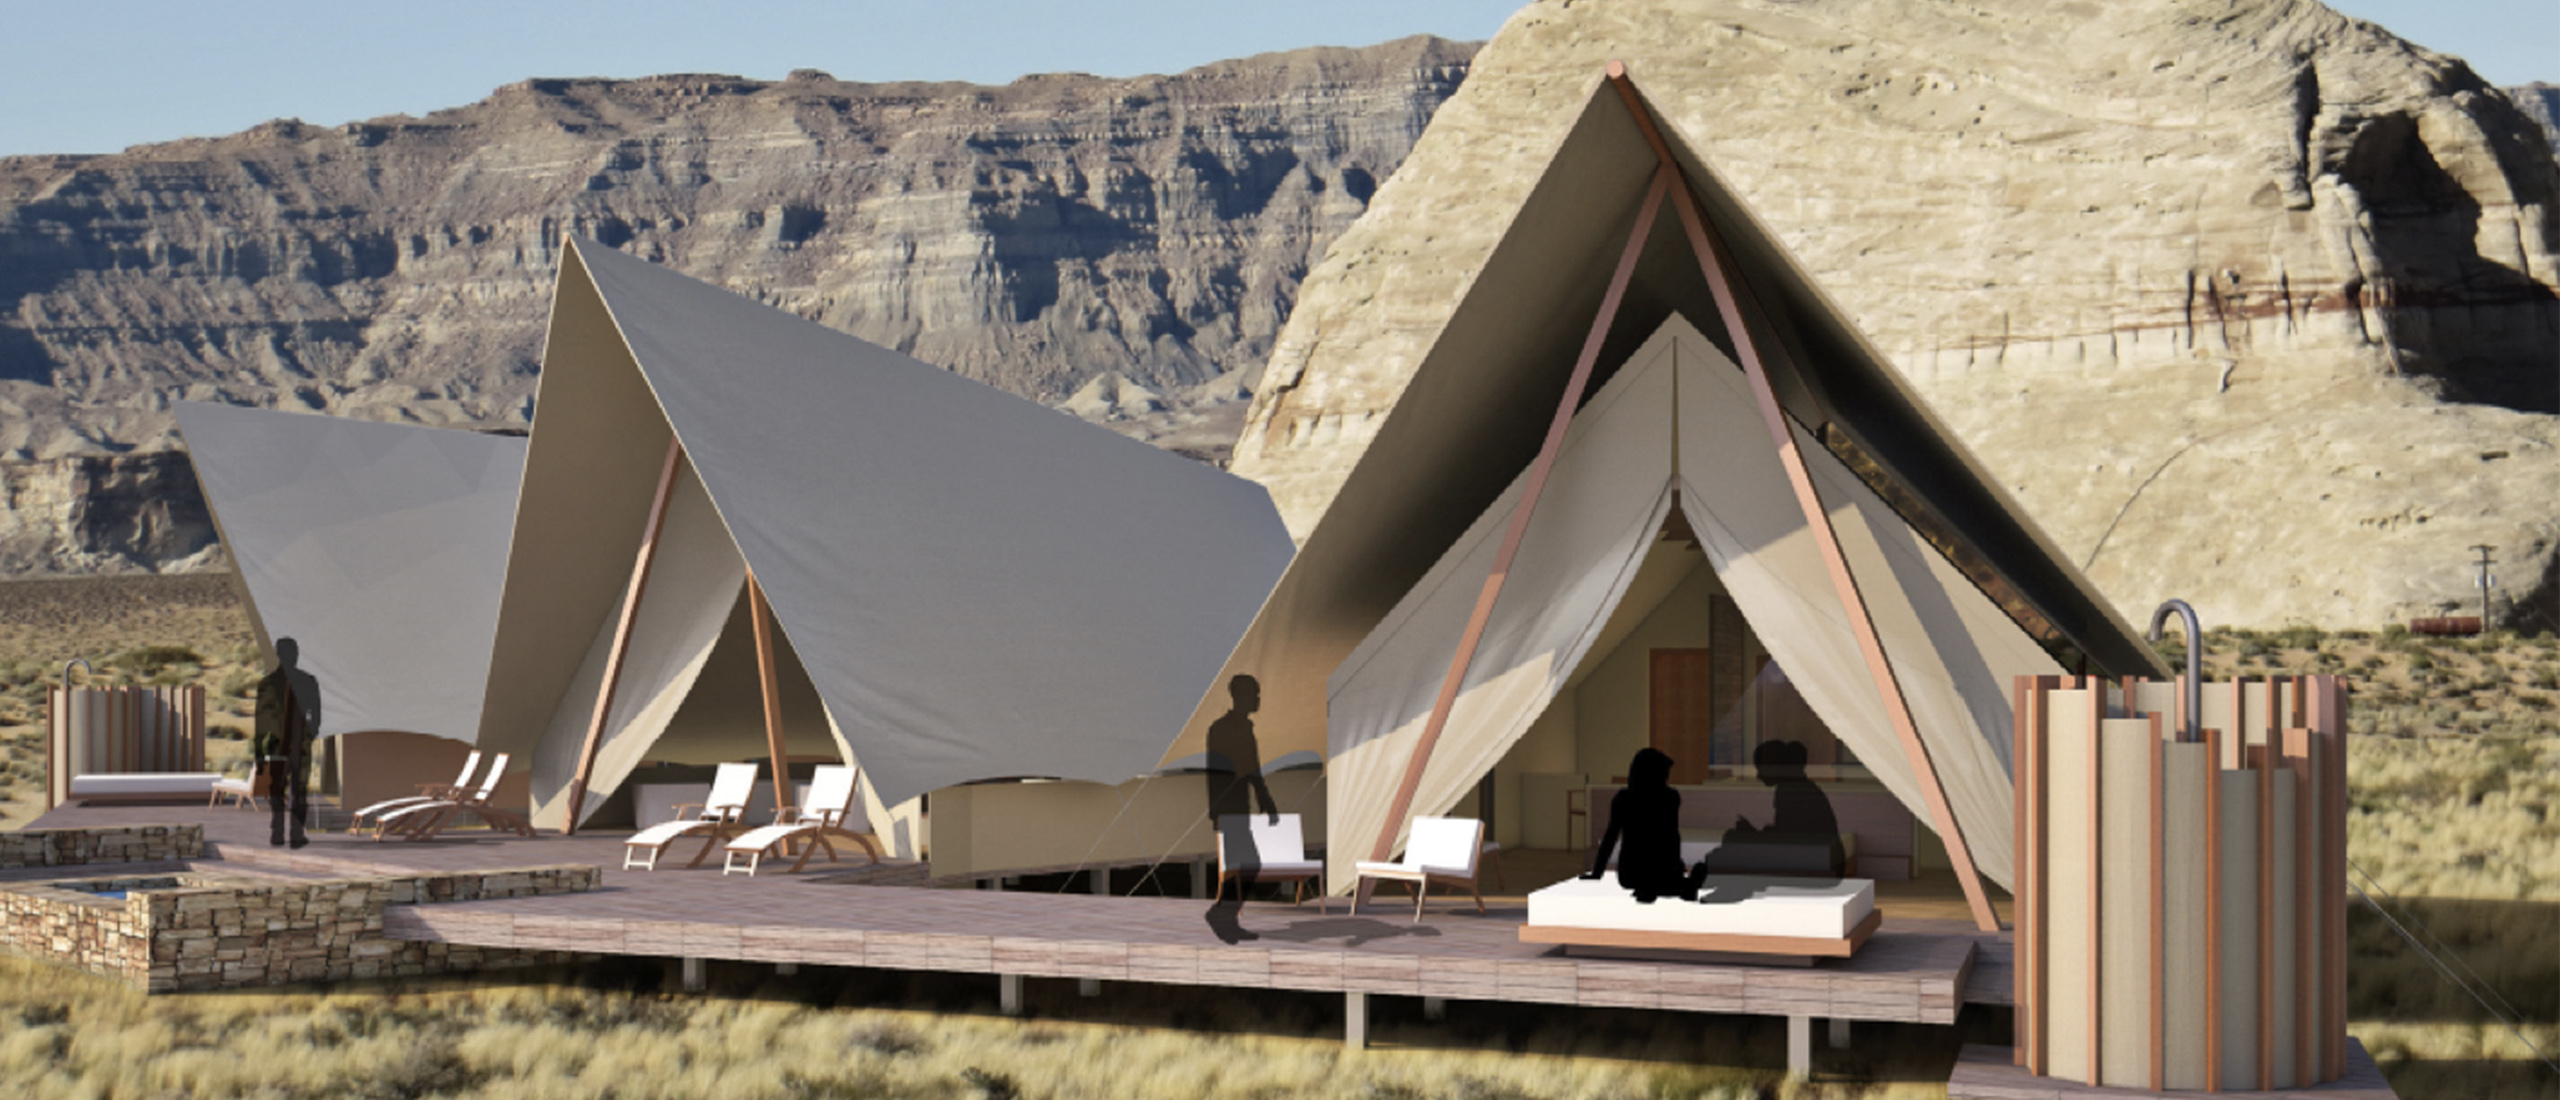 A Luxury Frontiers pop-up hotel concept